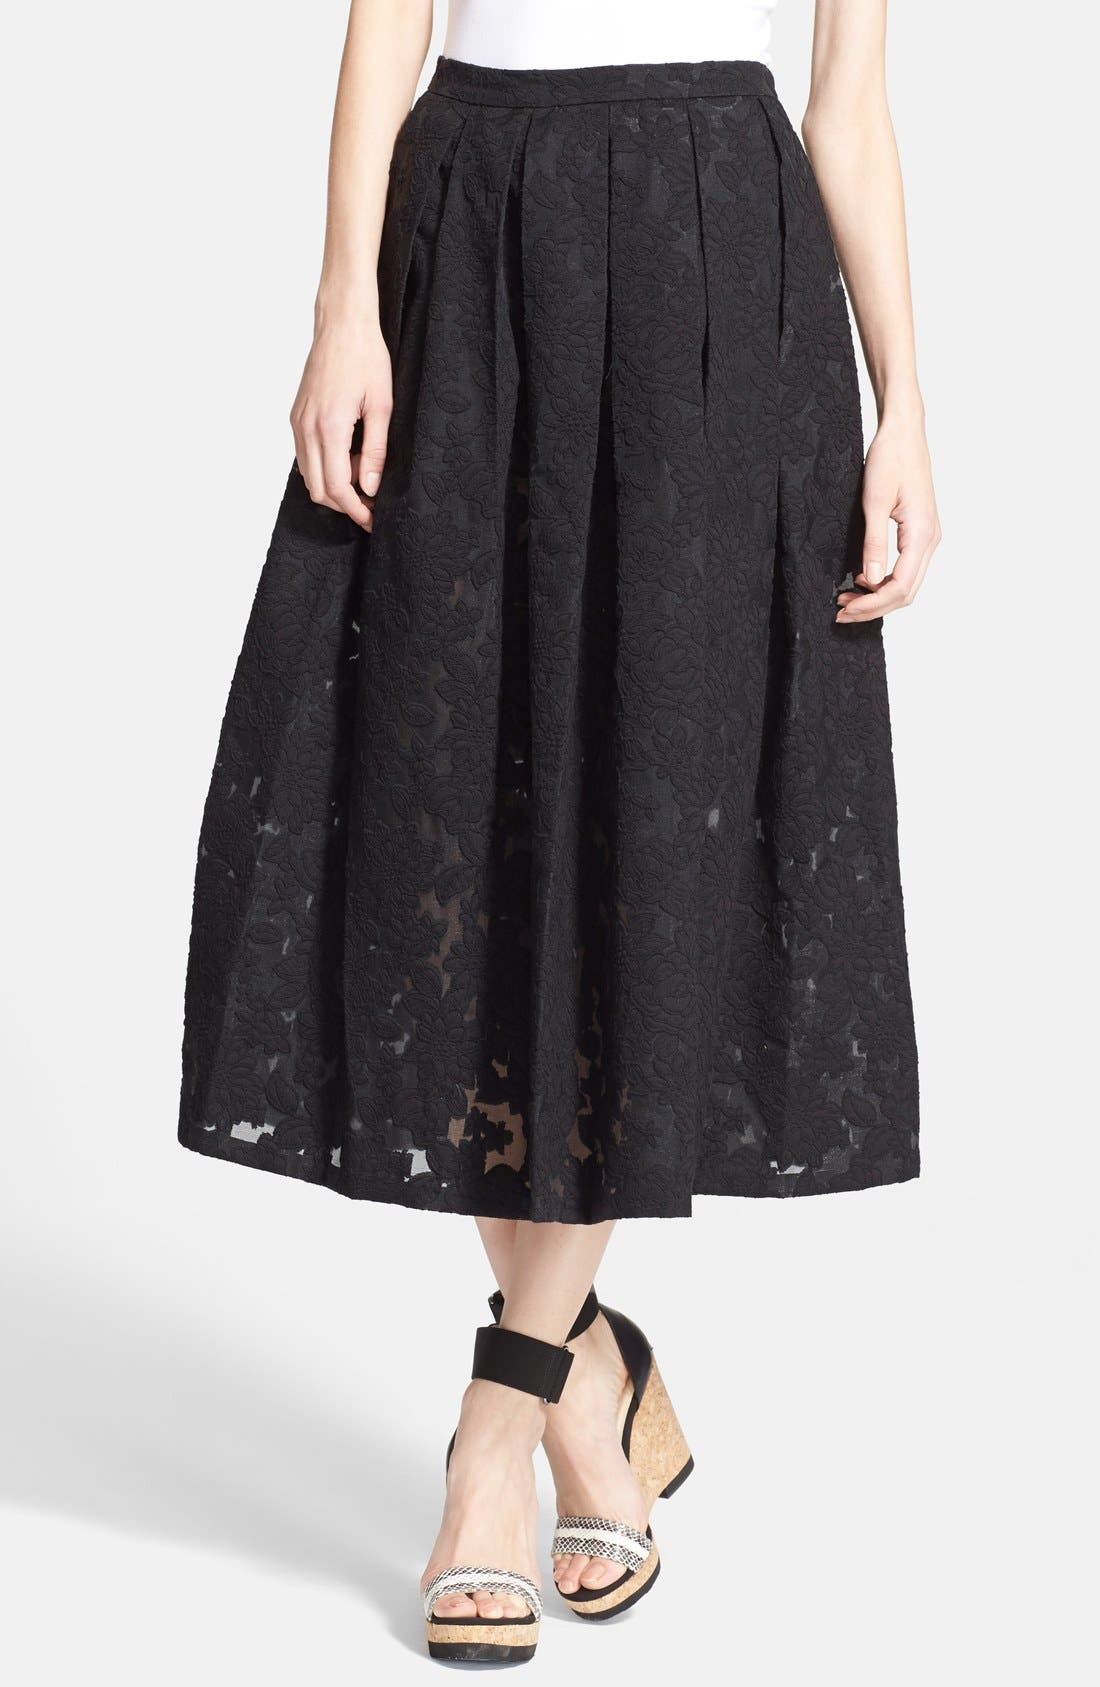 MICHAEL KORS Floral Embroidered Pleated Midi Skirt, Main, color, 001